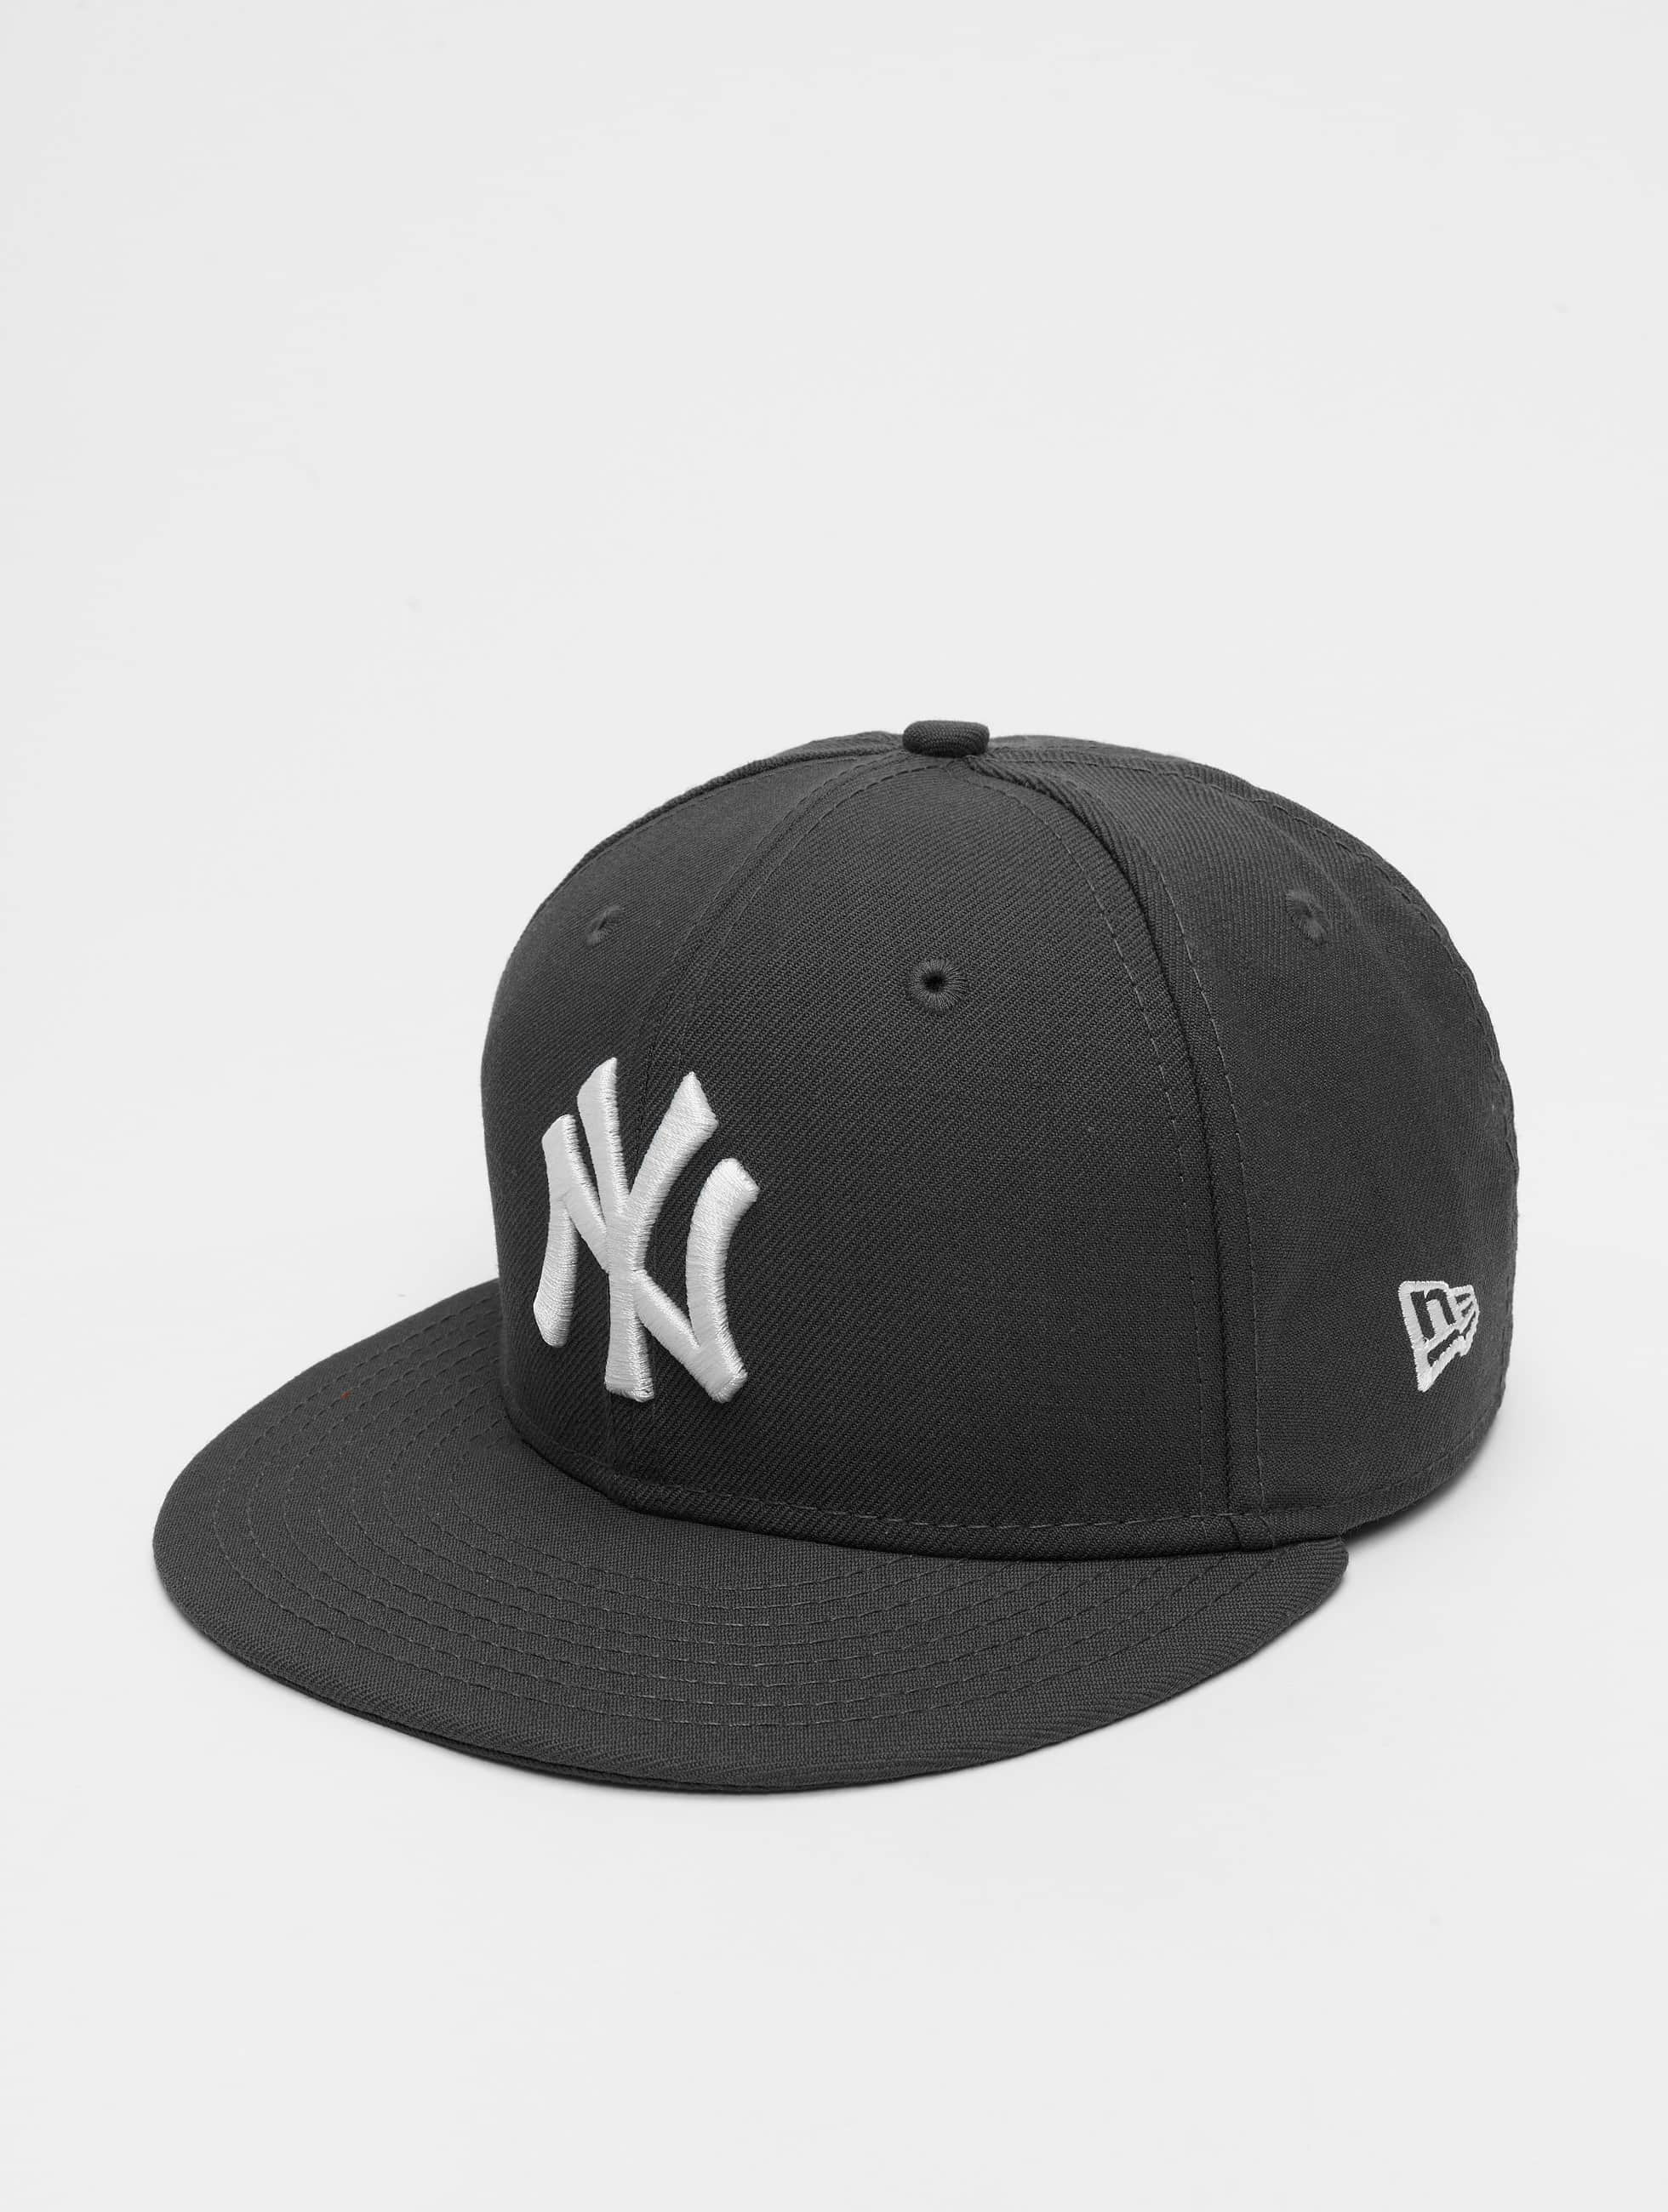 New Era Casquette / Fitted MLB Basic NY Yankees 59Fifty en gris